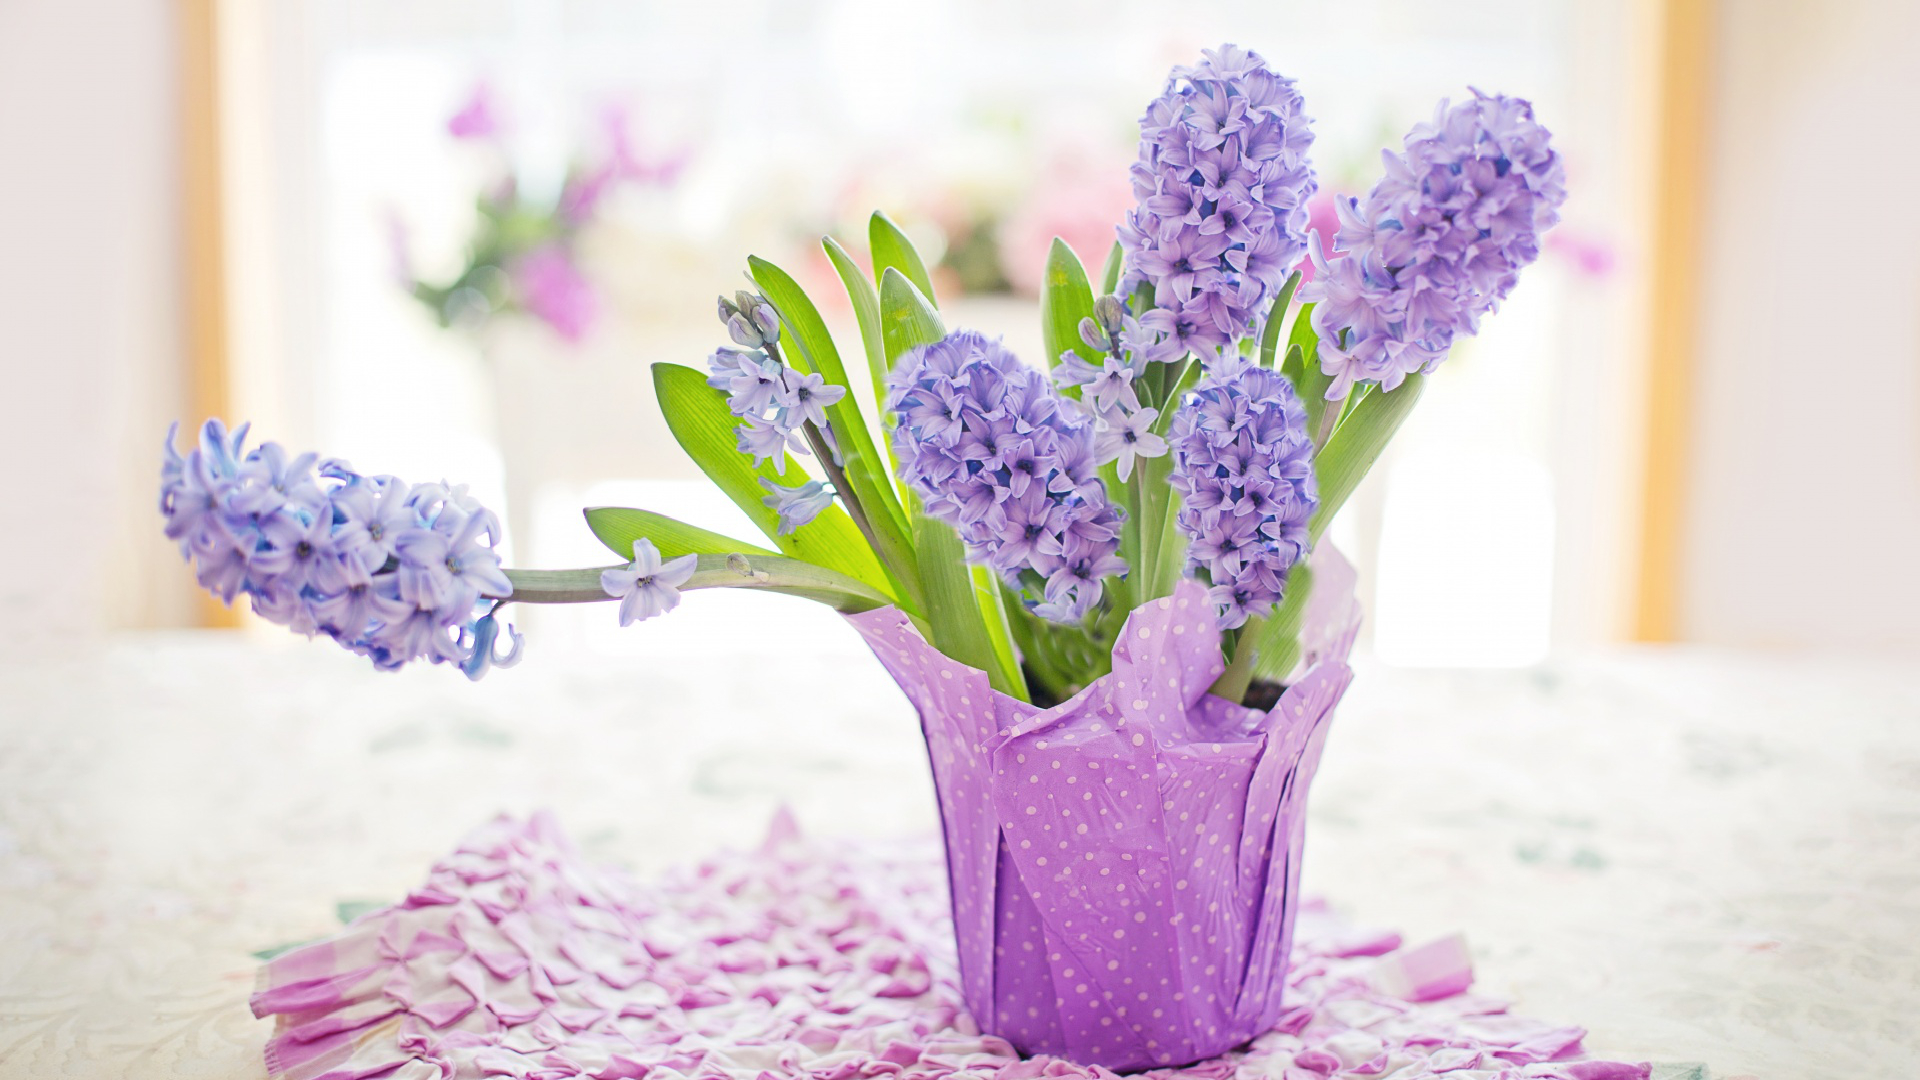 Easter Holiday 2020 Potted Hyacinths Home Download 1920x1080